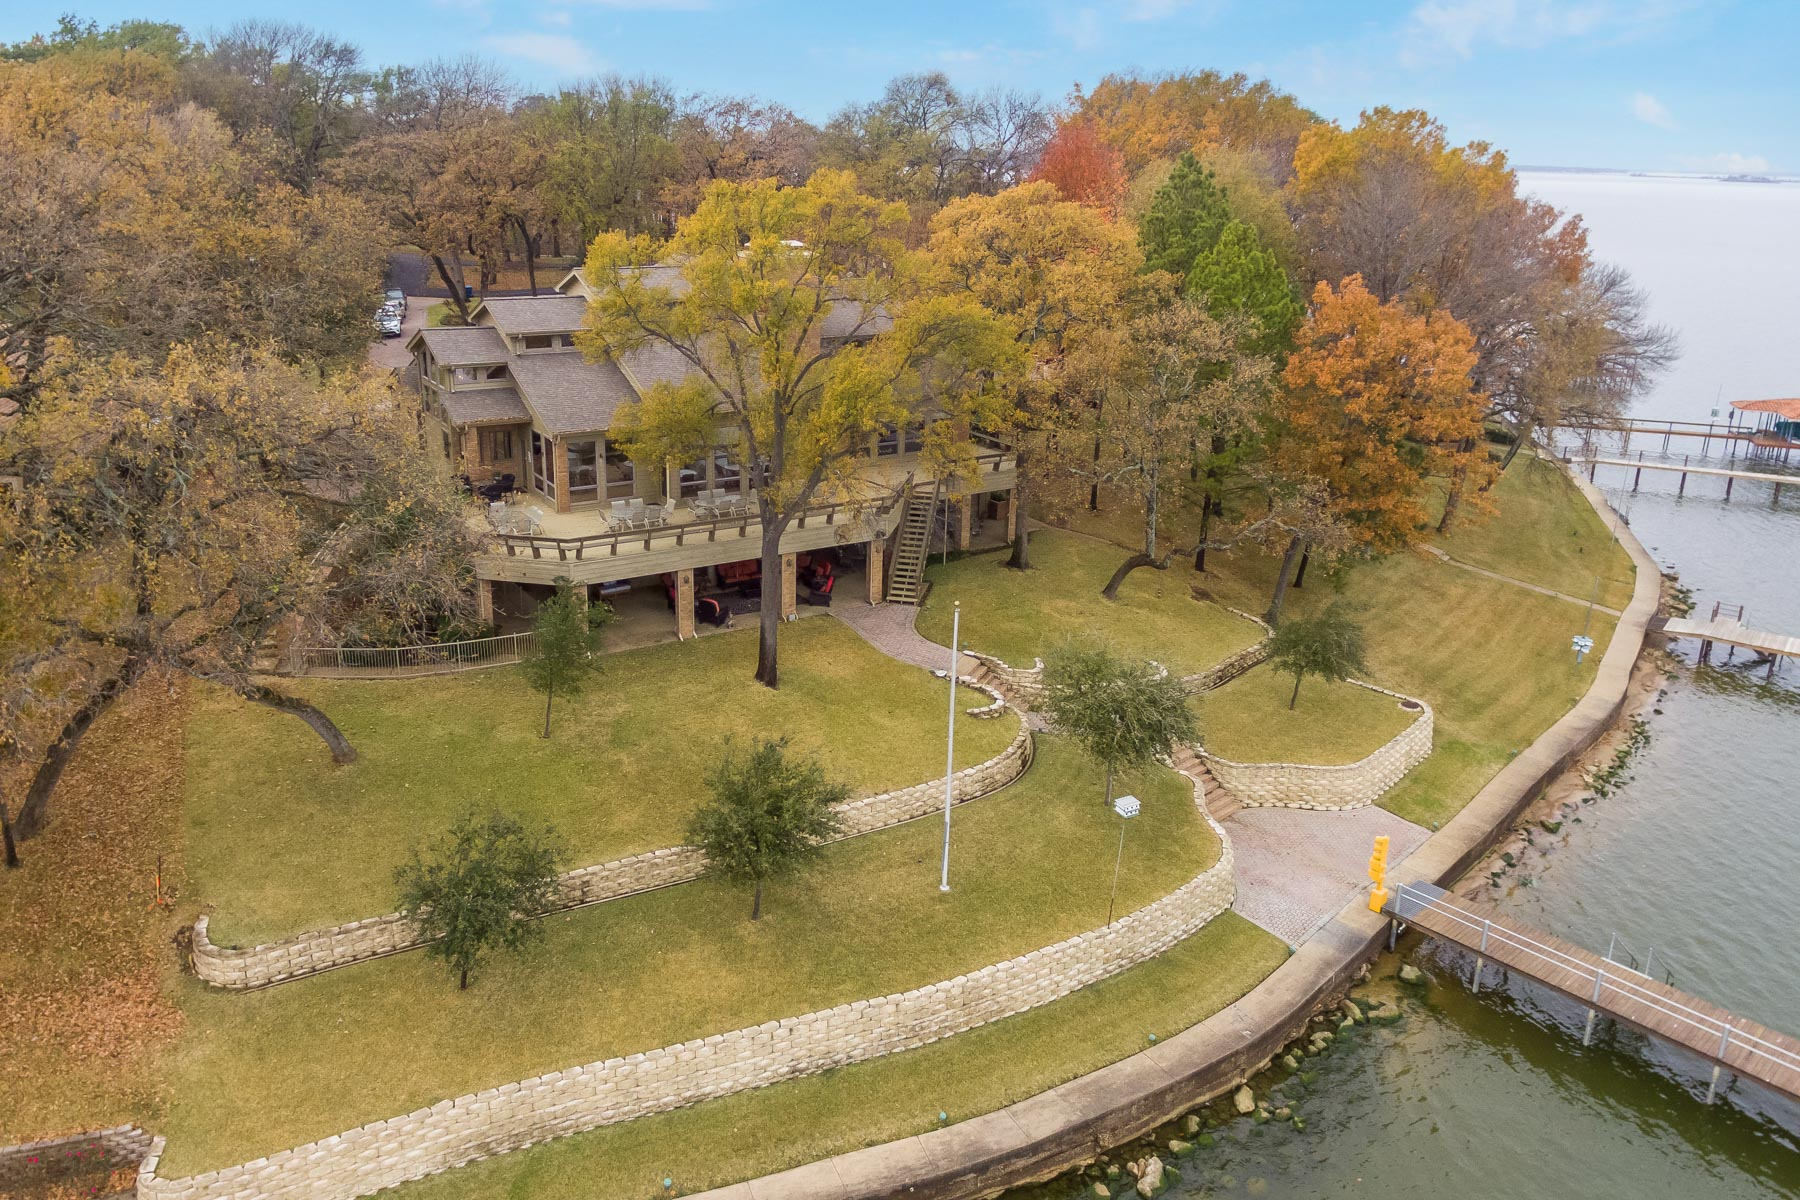 Single Family Home for Sale at Cedar Creek Lakehouse 809 Heather Woods Drive Kemp, Texas 75143 United States